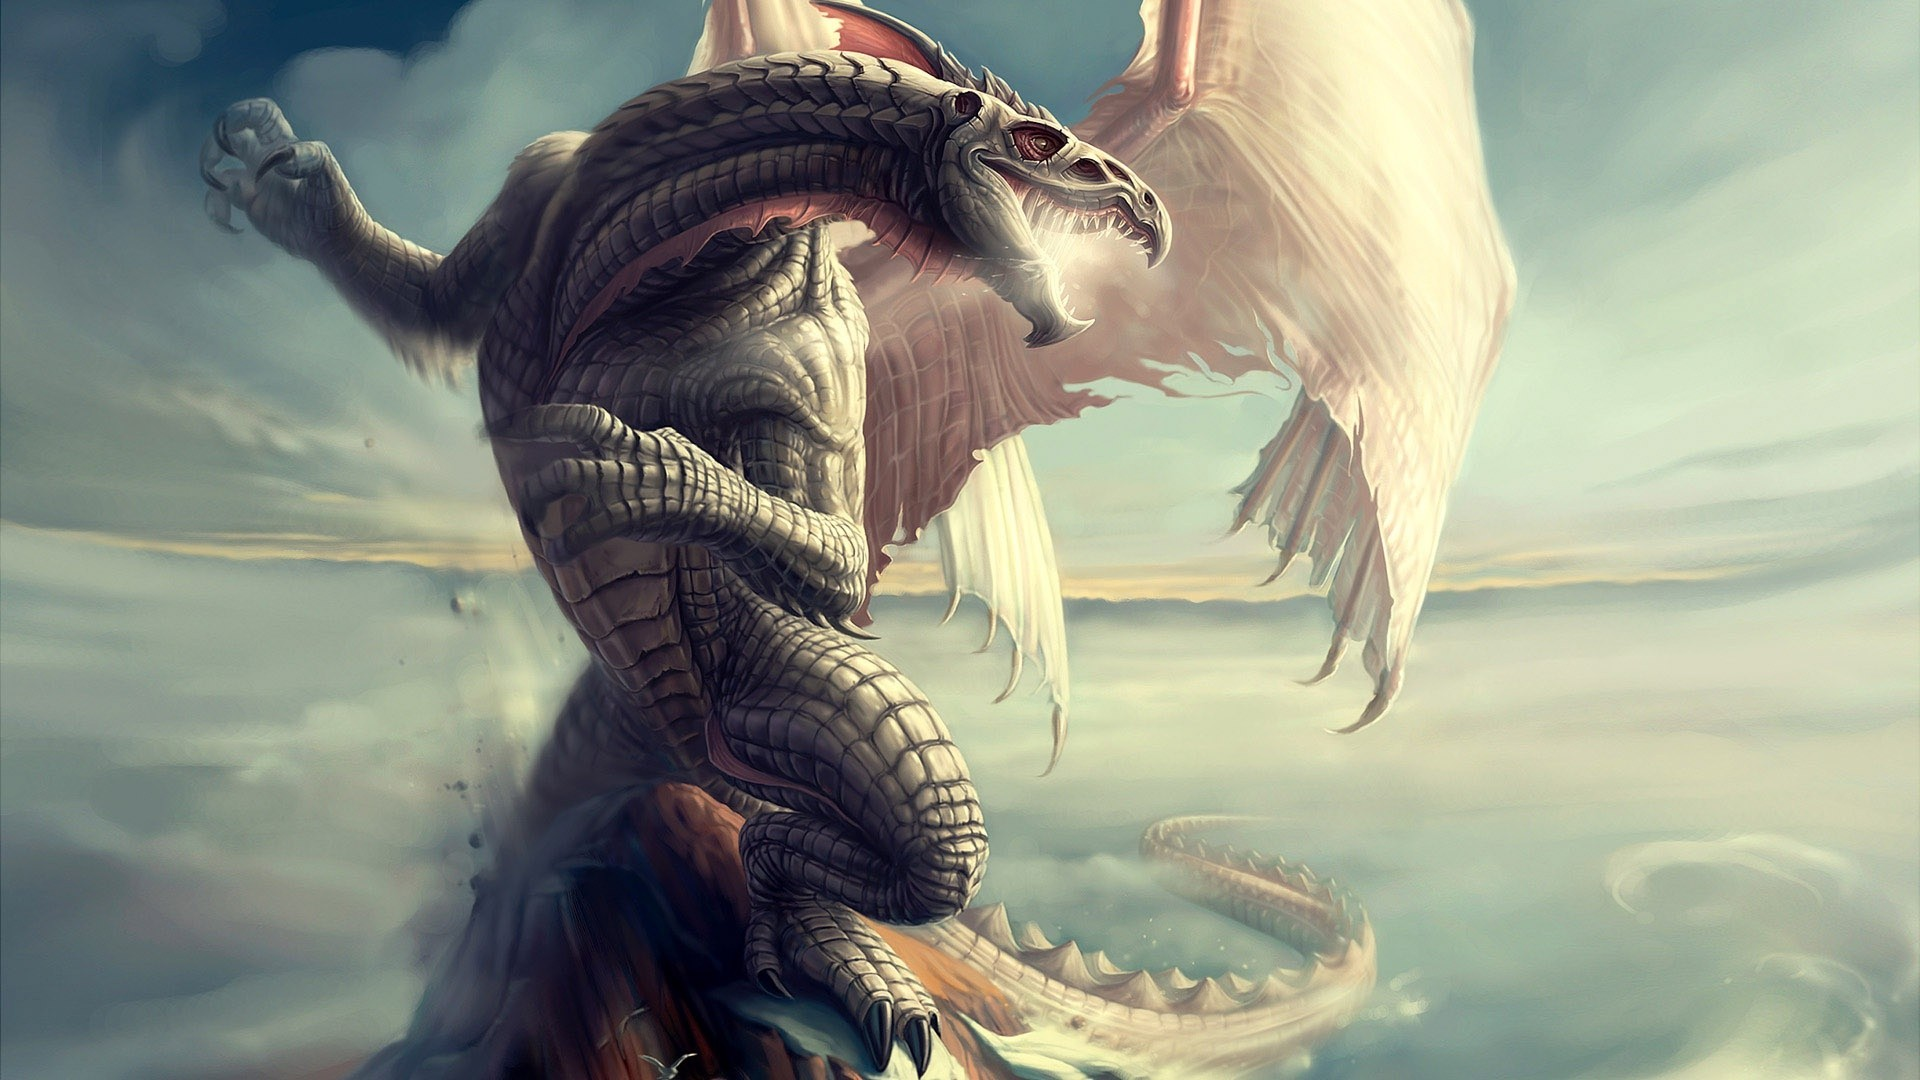 Cool dragon hd wallpaper backgrounds free download - Dragon backgrounds 1920x1080 ...